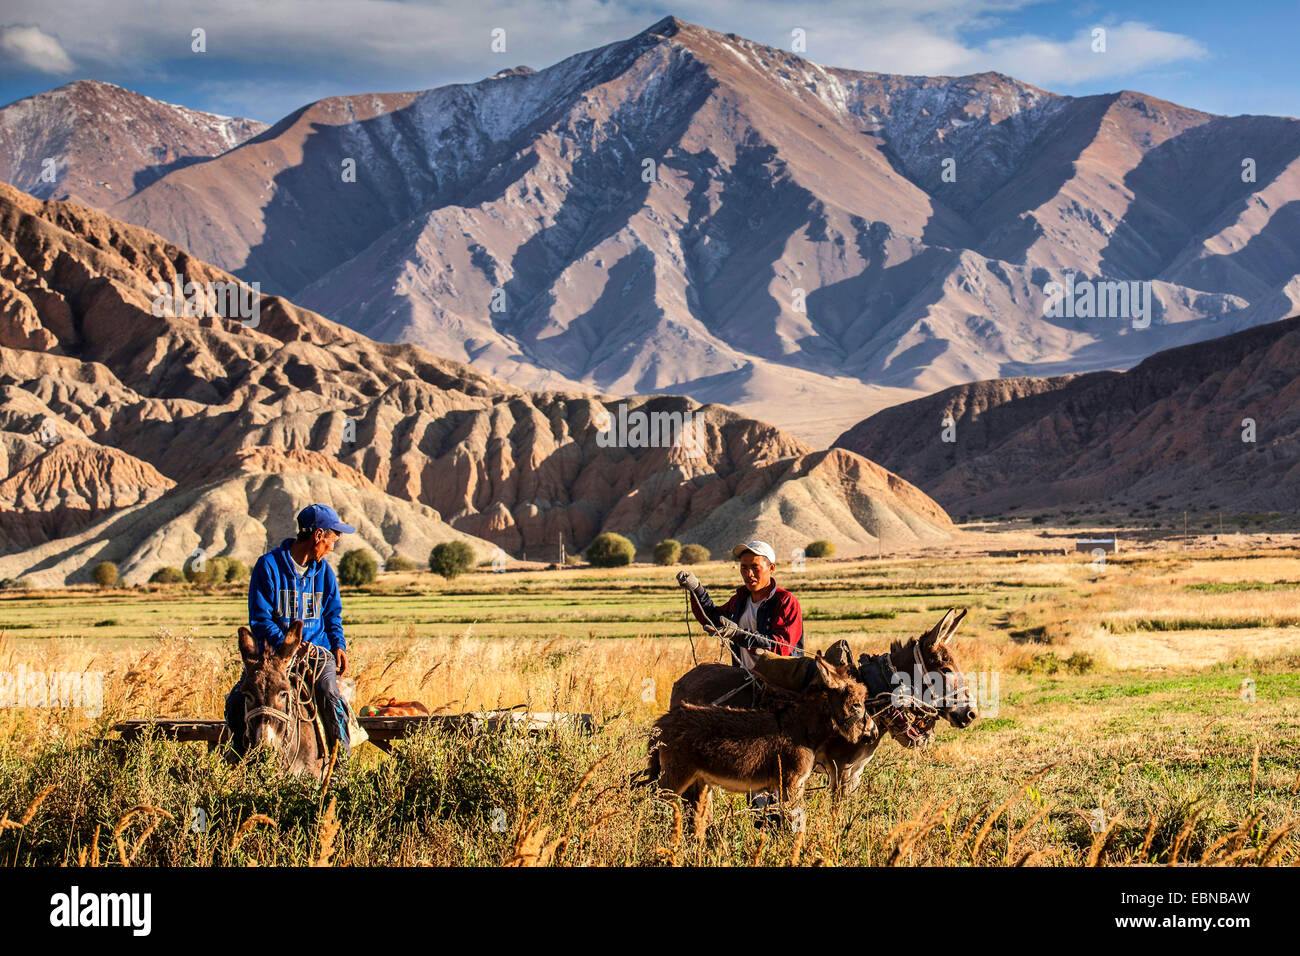 agricultural workers with donkey cart in field landscape, mountain range in background, Kyrgyzstan, Karakoel - Stock Image